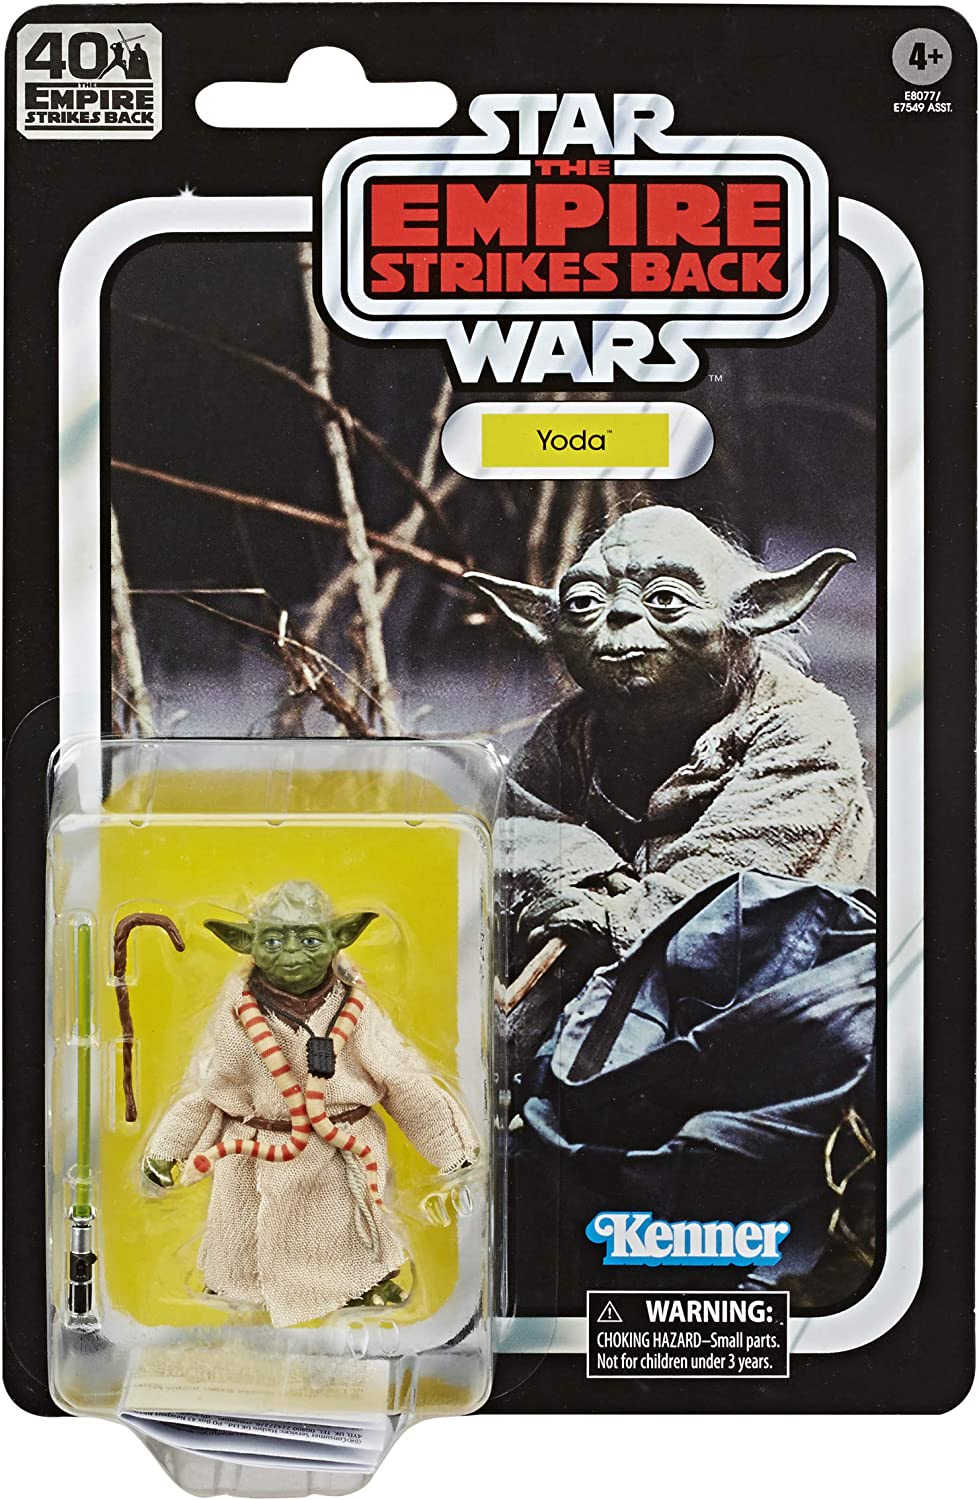 Star Wars The Black Series Yoda 6-inch Scale The Empire Strikes Back 40TH Anniversary Collectible Figure, Kids Ages 4 and Up